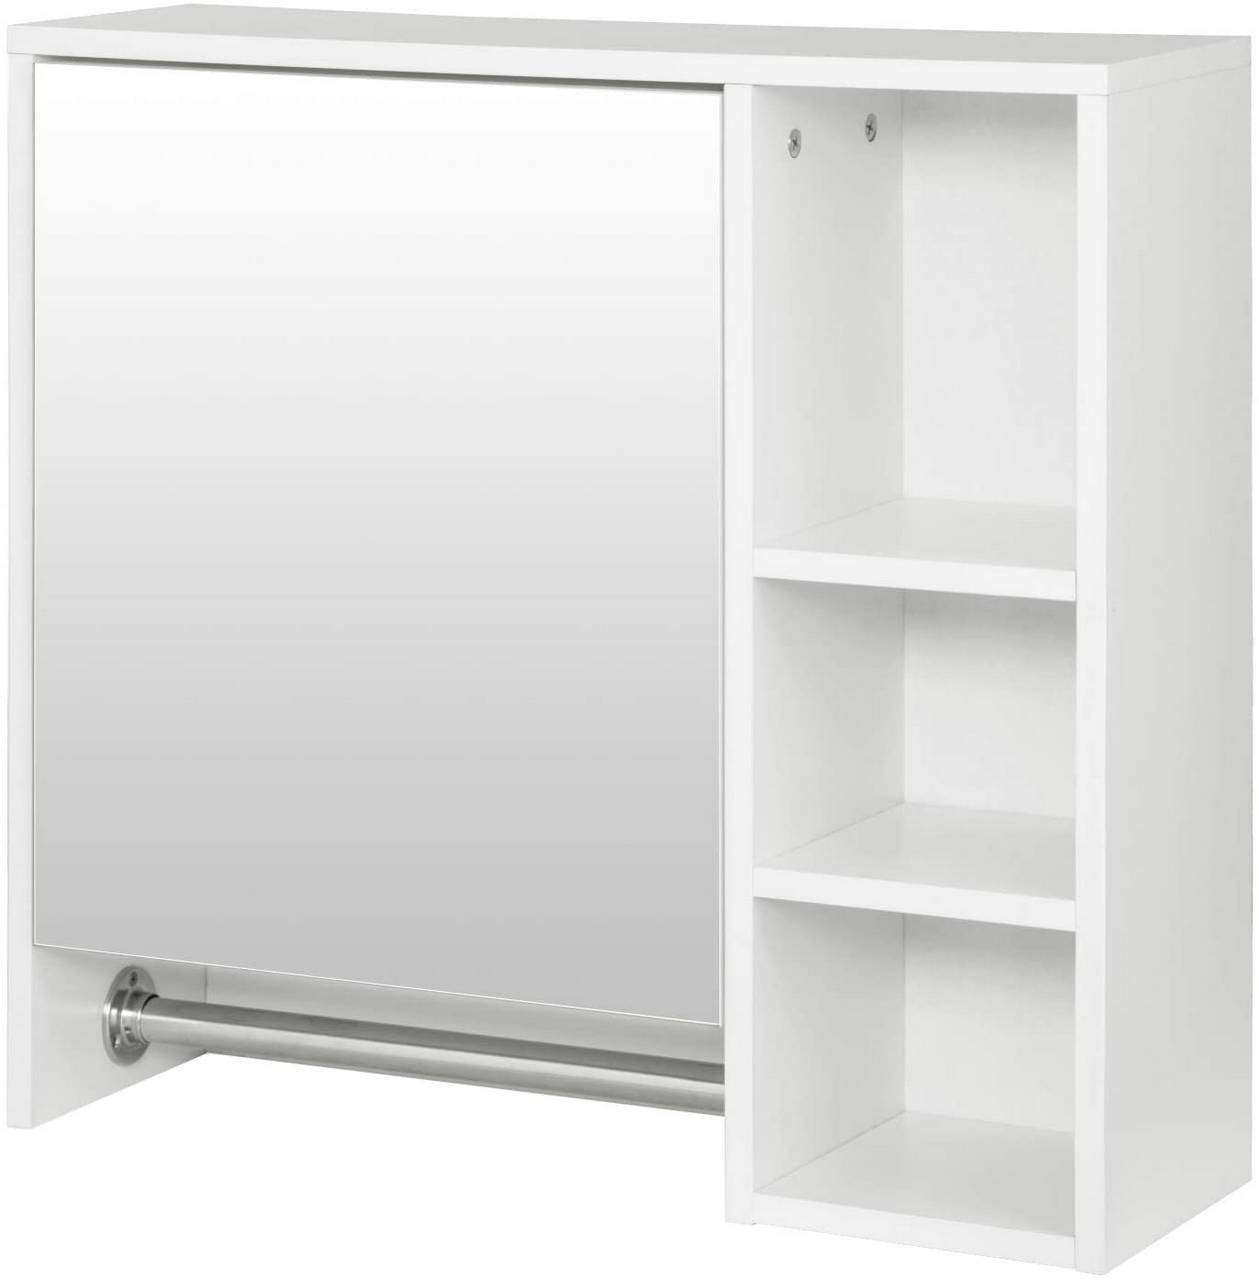 Wall Bathroom Cabinet With 3 Storage Unit Stainess Steel Hanging Rail Woltu Eu